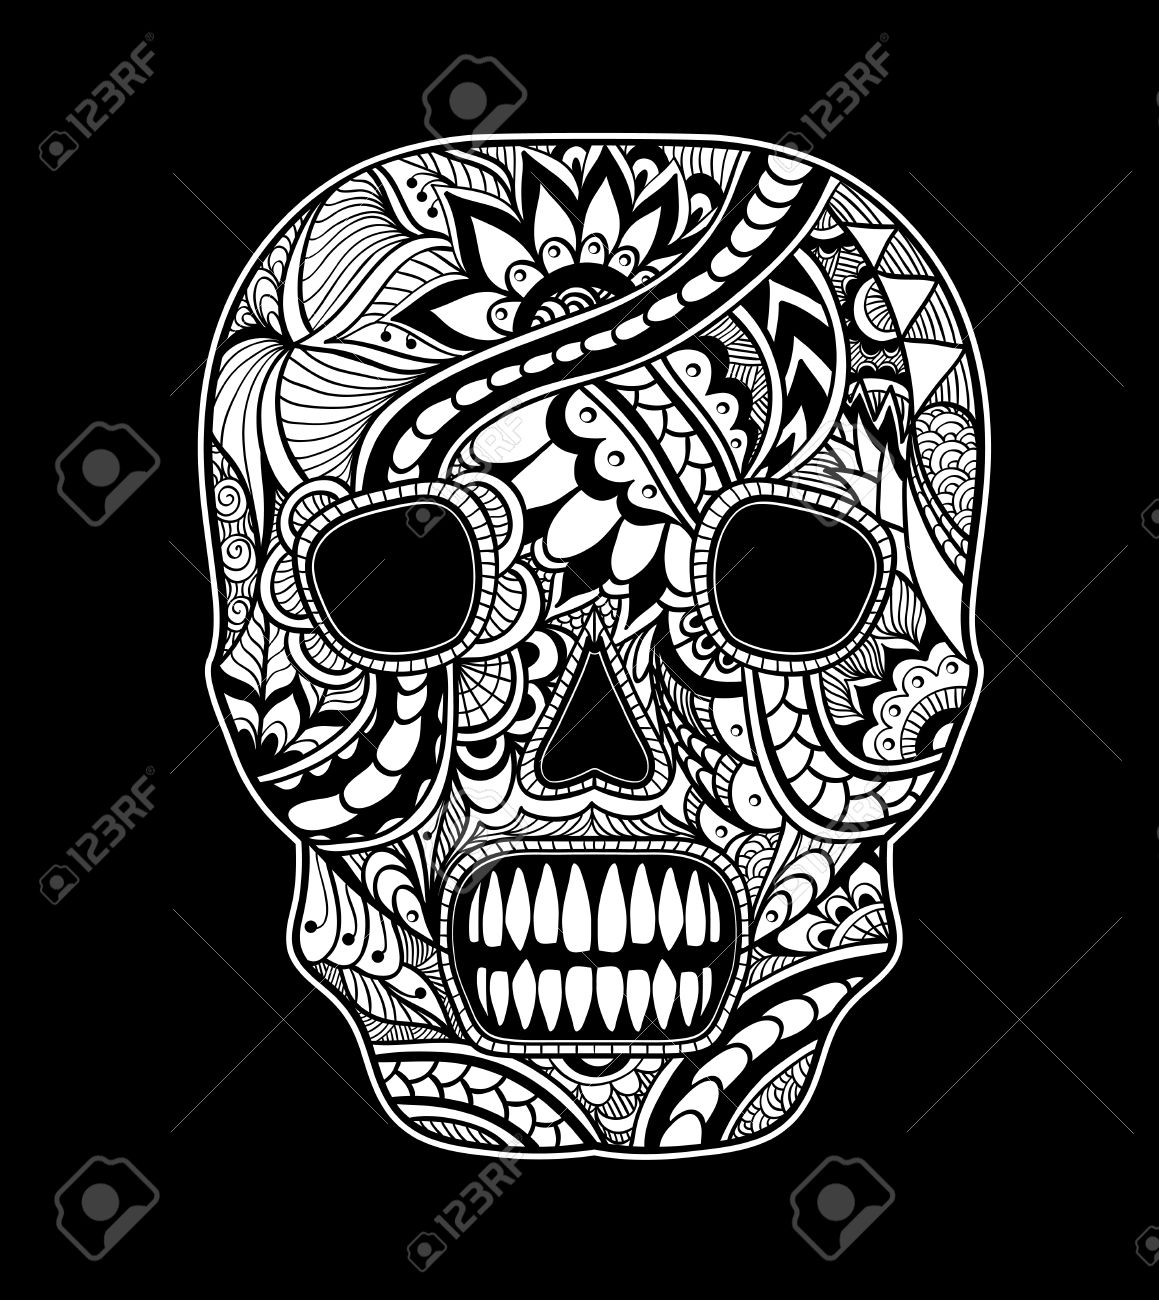 Decorate Skull Painted Ornament White On Black For Tattoo Or